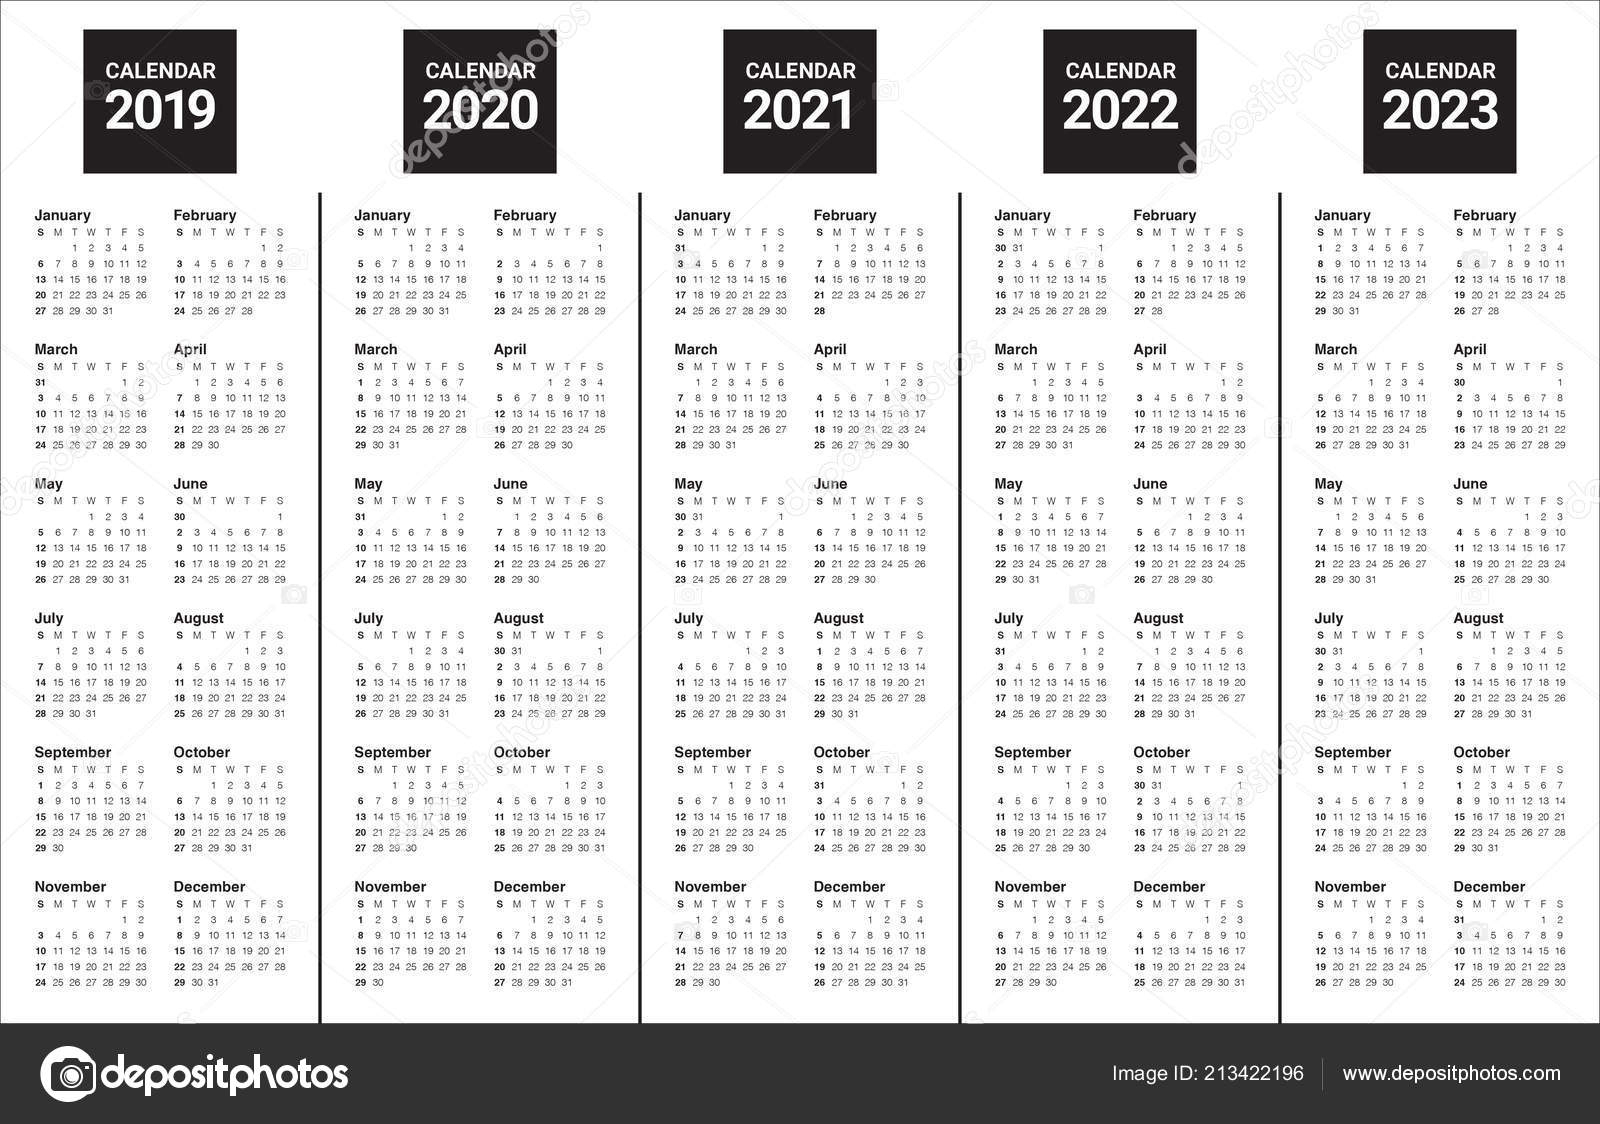 Year 2019 2020 2021 2022 2023 Calendar Vector Design Template within Free Prinable Calenders 2020 To 2023